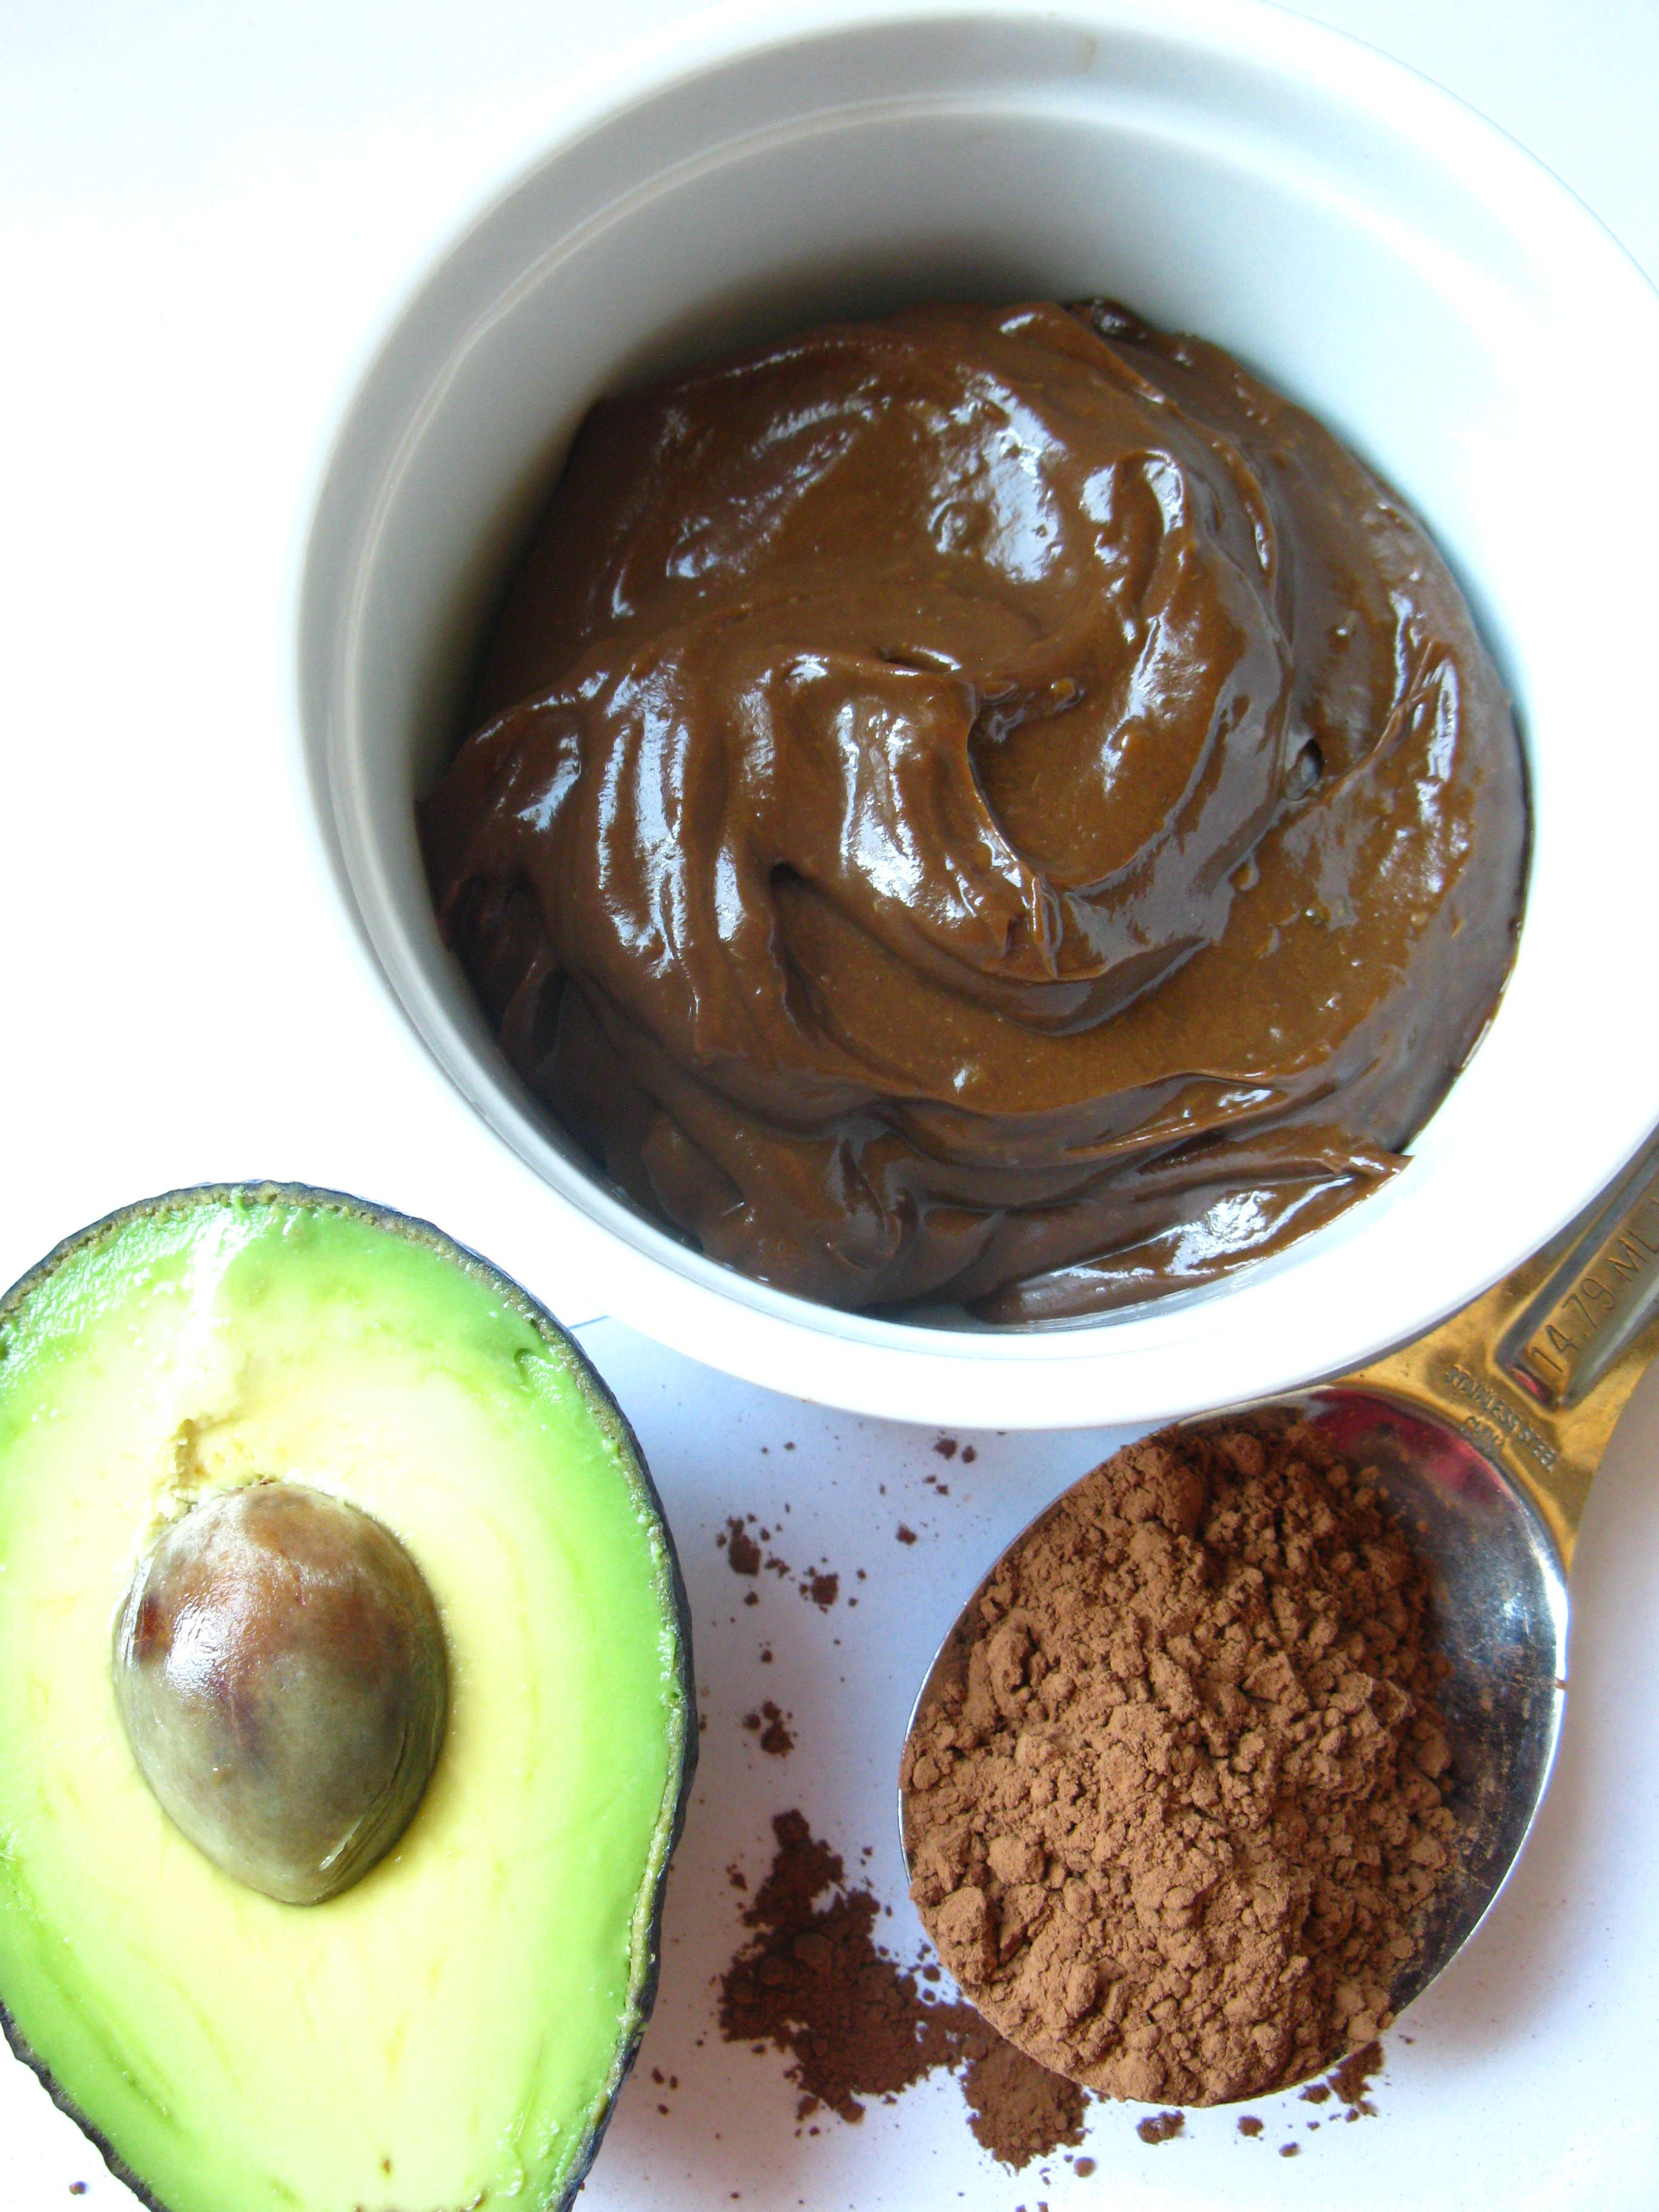 Chocolate avocado pudding and other fairtrade back to